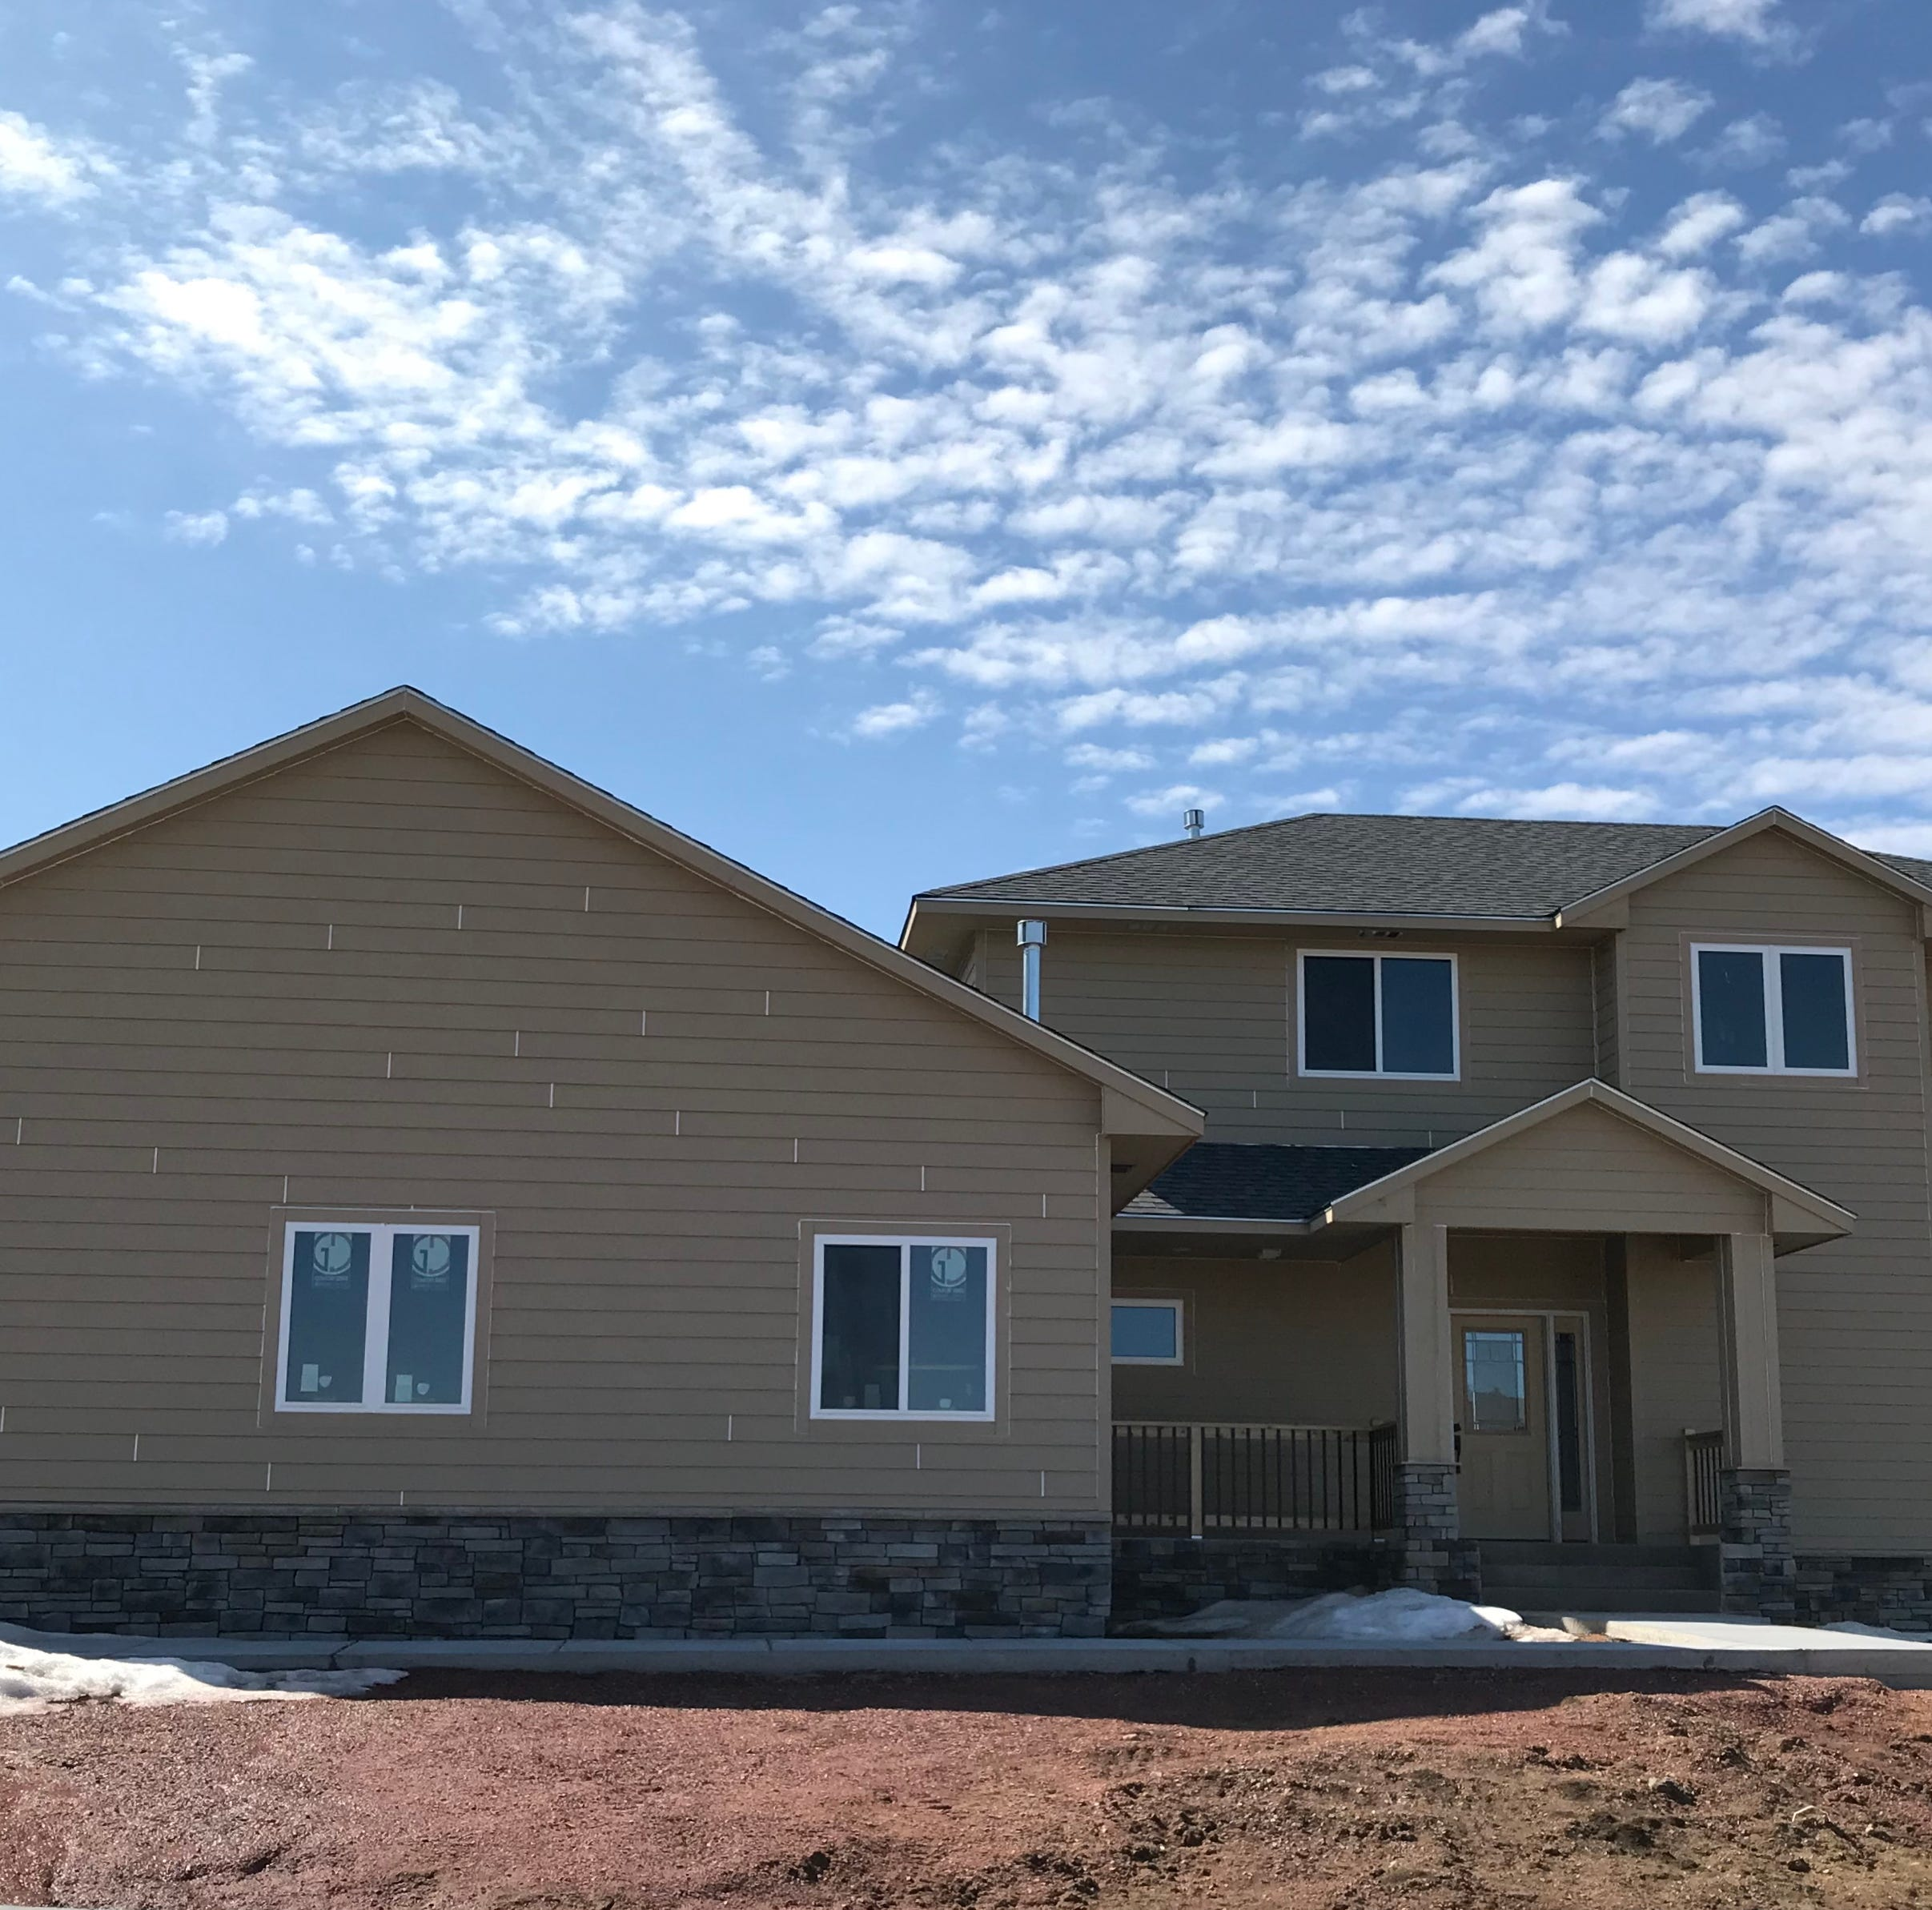 $639,000 home in northeast Sioux Falls tops home sales report